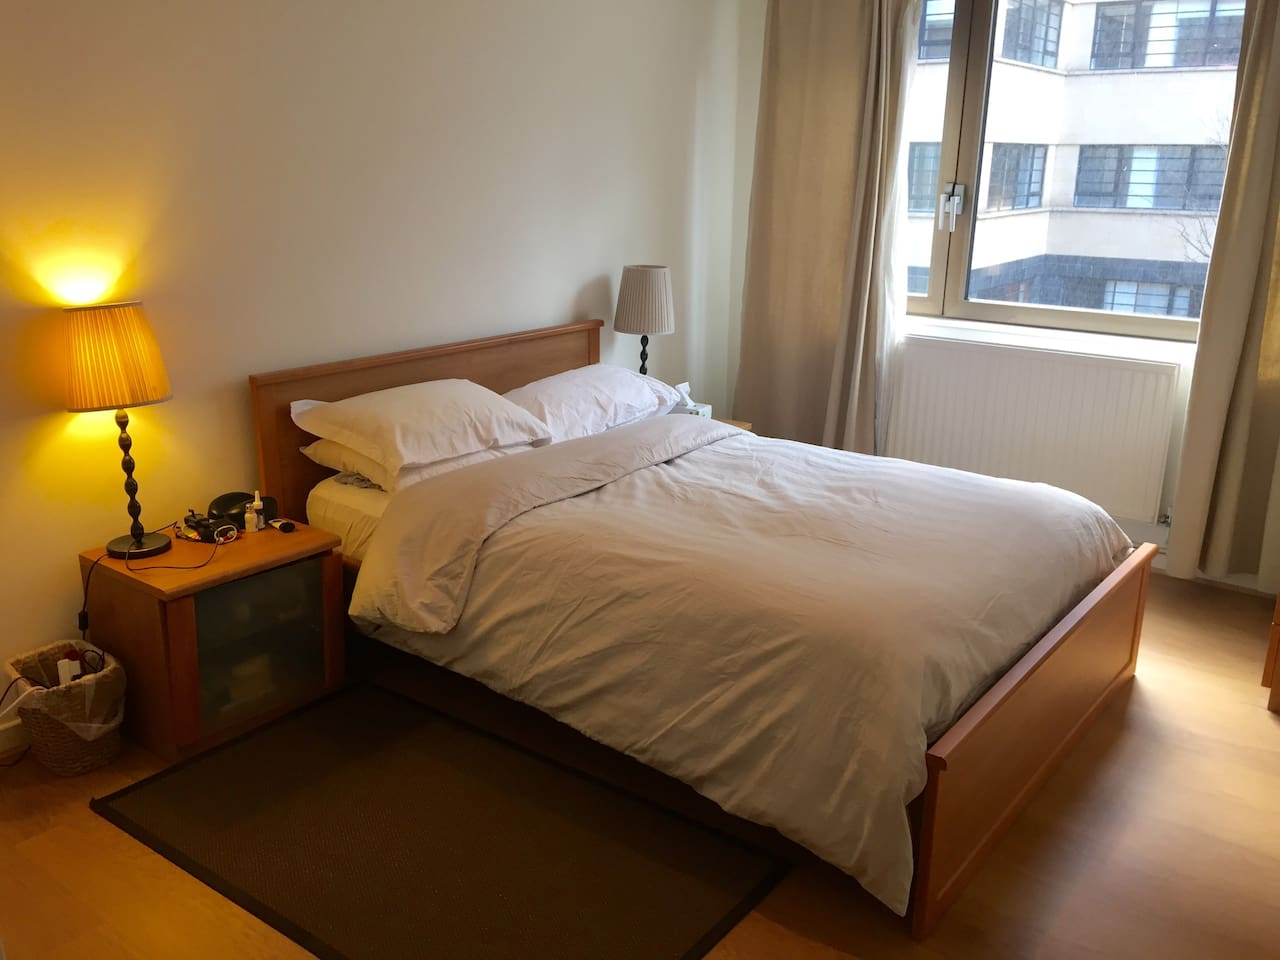 Spacious and comfortable bedroom with ample storage